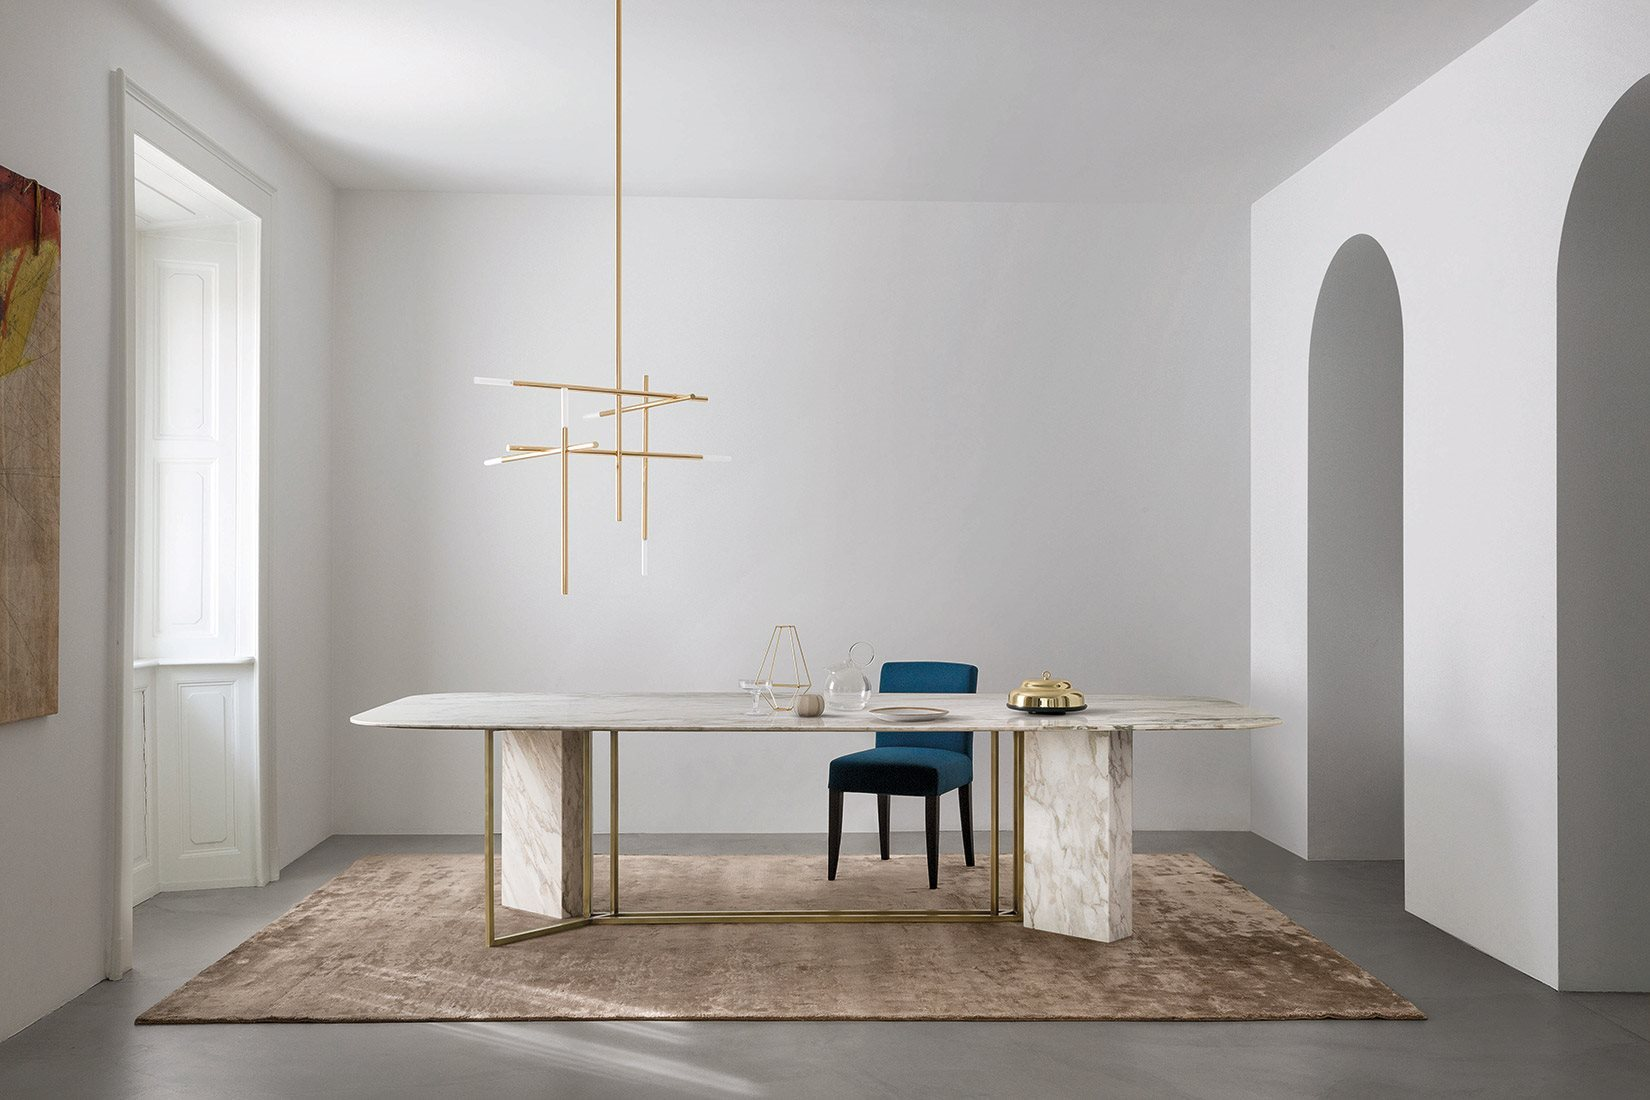 Plinto Rectangular Large Dining Table - Dining tables with metal base with plinth. Tops in different models and dimensions. Finishes for metal base - black varnishes - bronzed brass Finishes for plinth - wood veneer - matt or glossy lacquer - marble Finishes for tops - wood veneer - matt or glossy lacquer - marble   Matter of Stuff